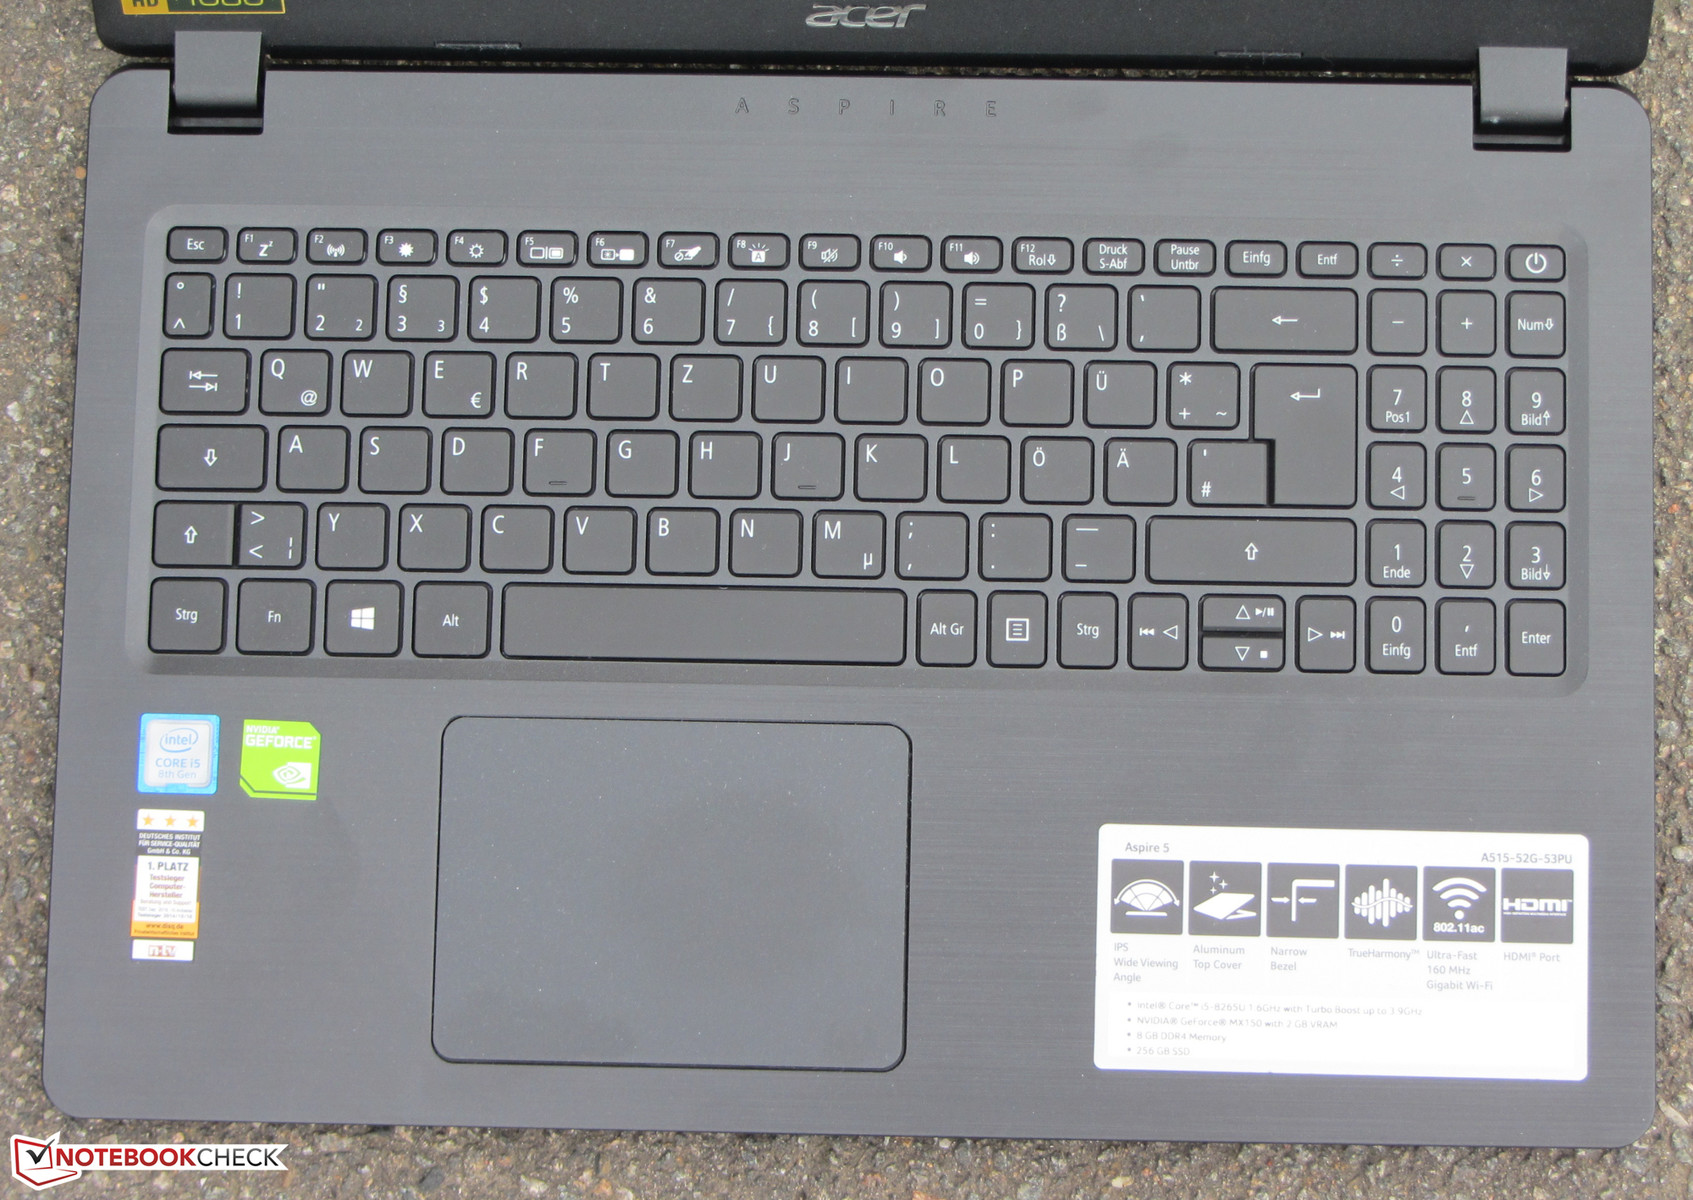 Acer Aspire 5 A515-52G (i5-8265U, MX150, SSD, FHD) Laptop